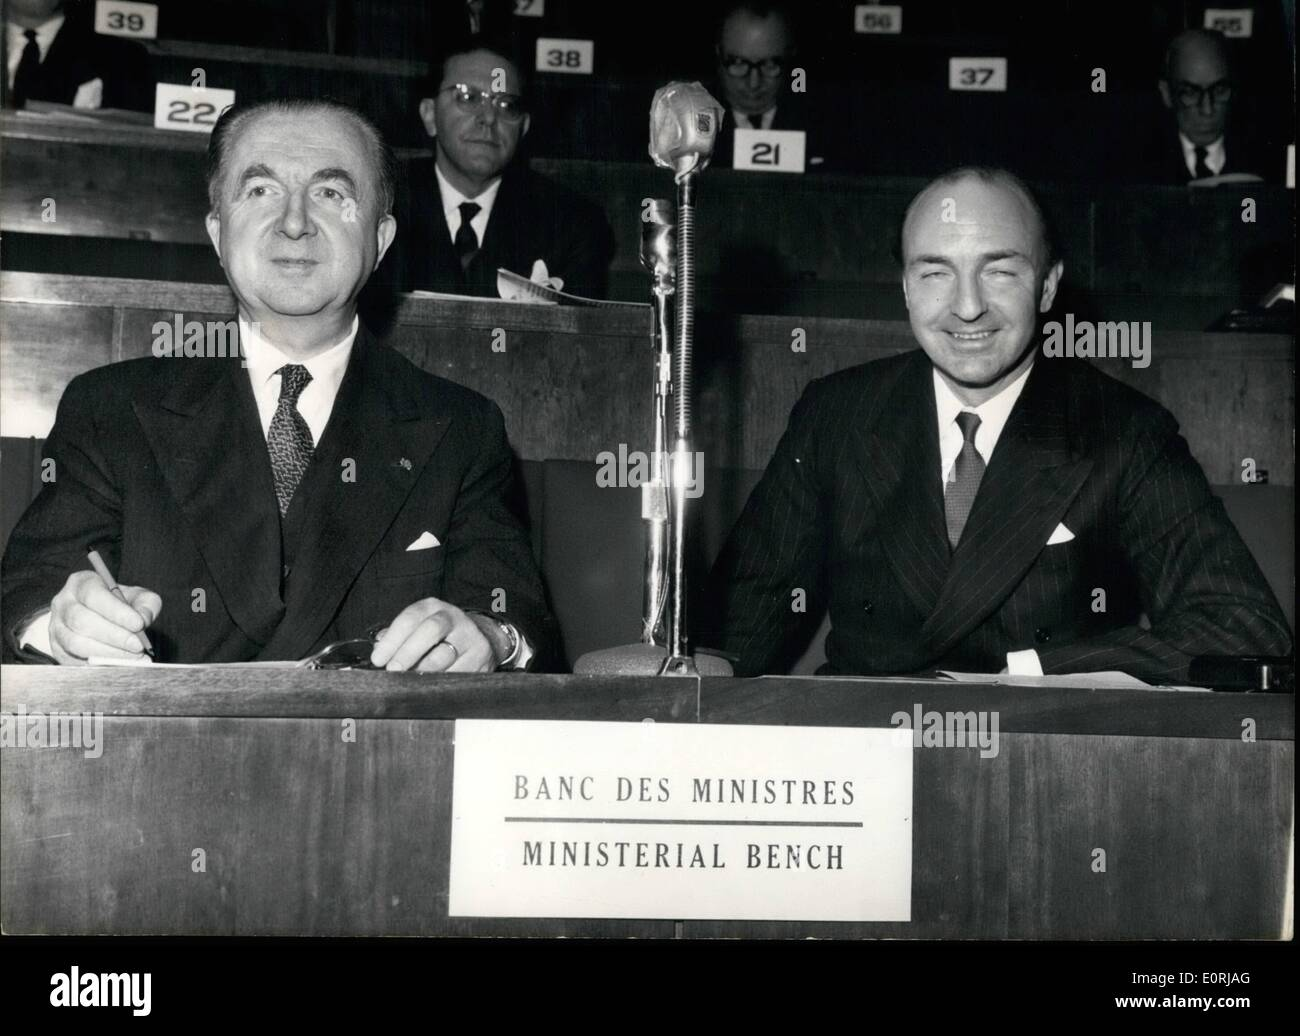 Nov. 11, 1959 - Ministers of Union of Western Europe meet in Paris: A four day meeting of the Ministers of the seven countries members of the Union of Western Europe opened in Paris today. The problem of the creation of ''Strategic Nuclear Force'' is one of the items on the agenda. Photo shows Italian Foreign Minister Giuseppe Pella (left) and Foreign Office State Secretary John Profumo pictured on the Ministers bench during the opening meeting this afternoon. - Stock Image